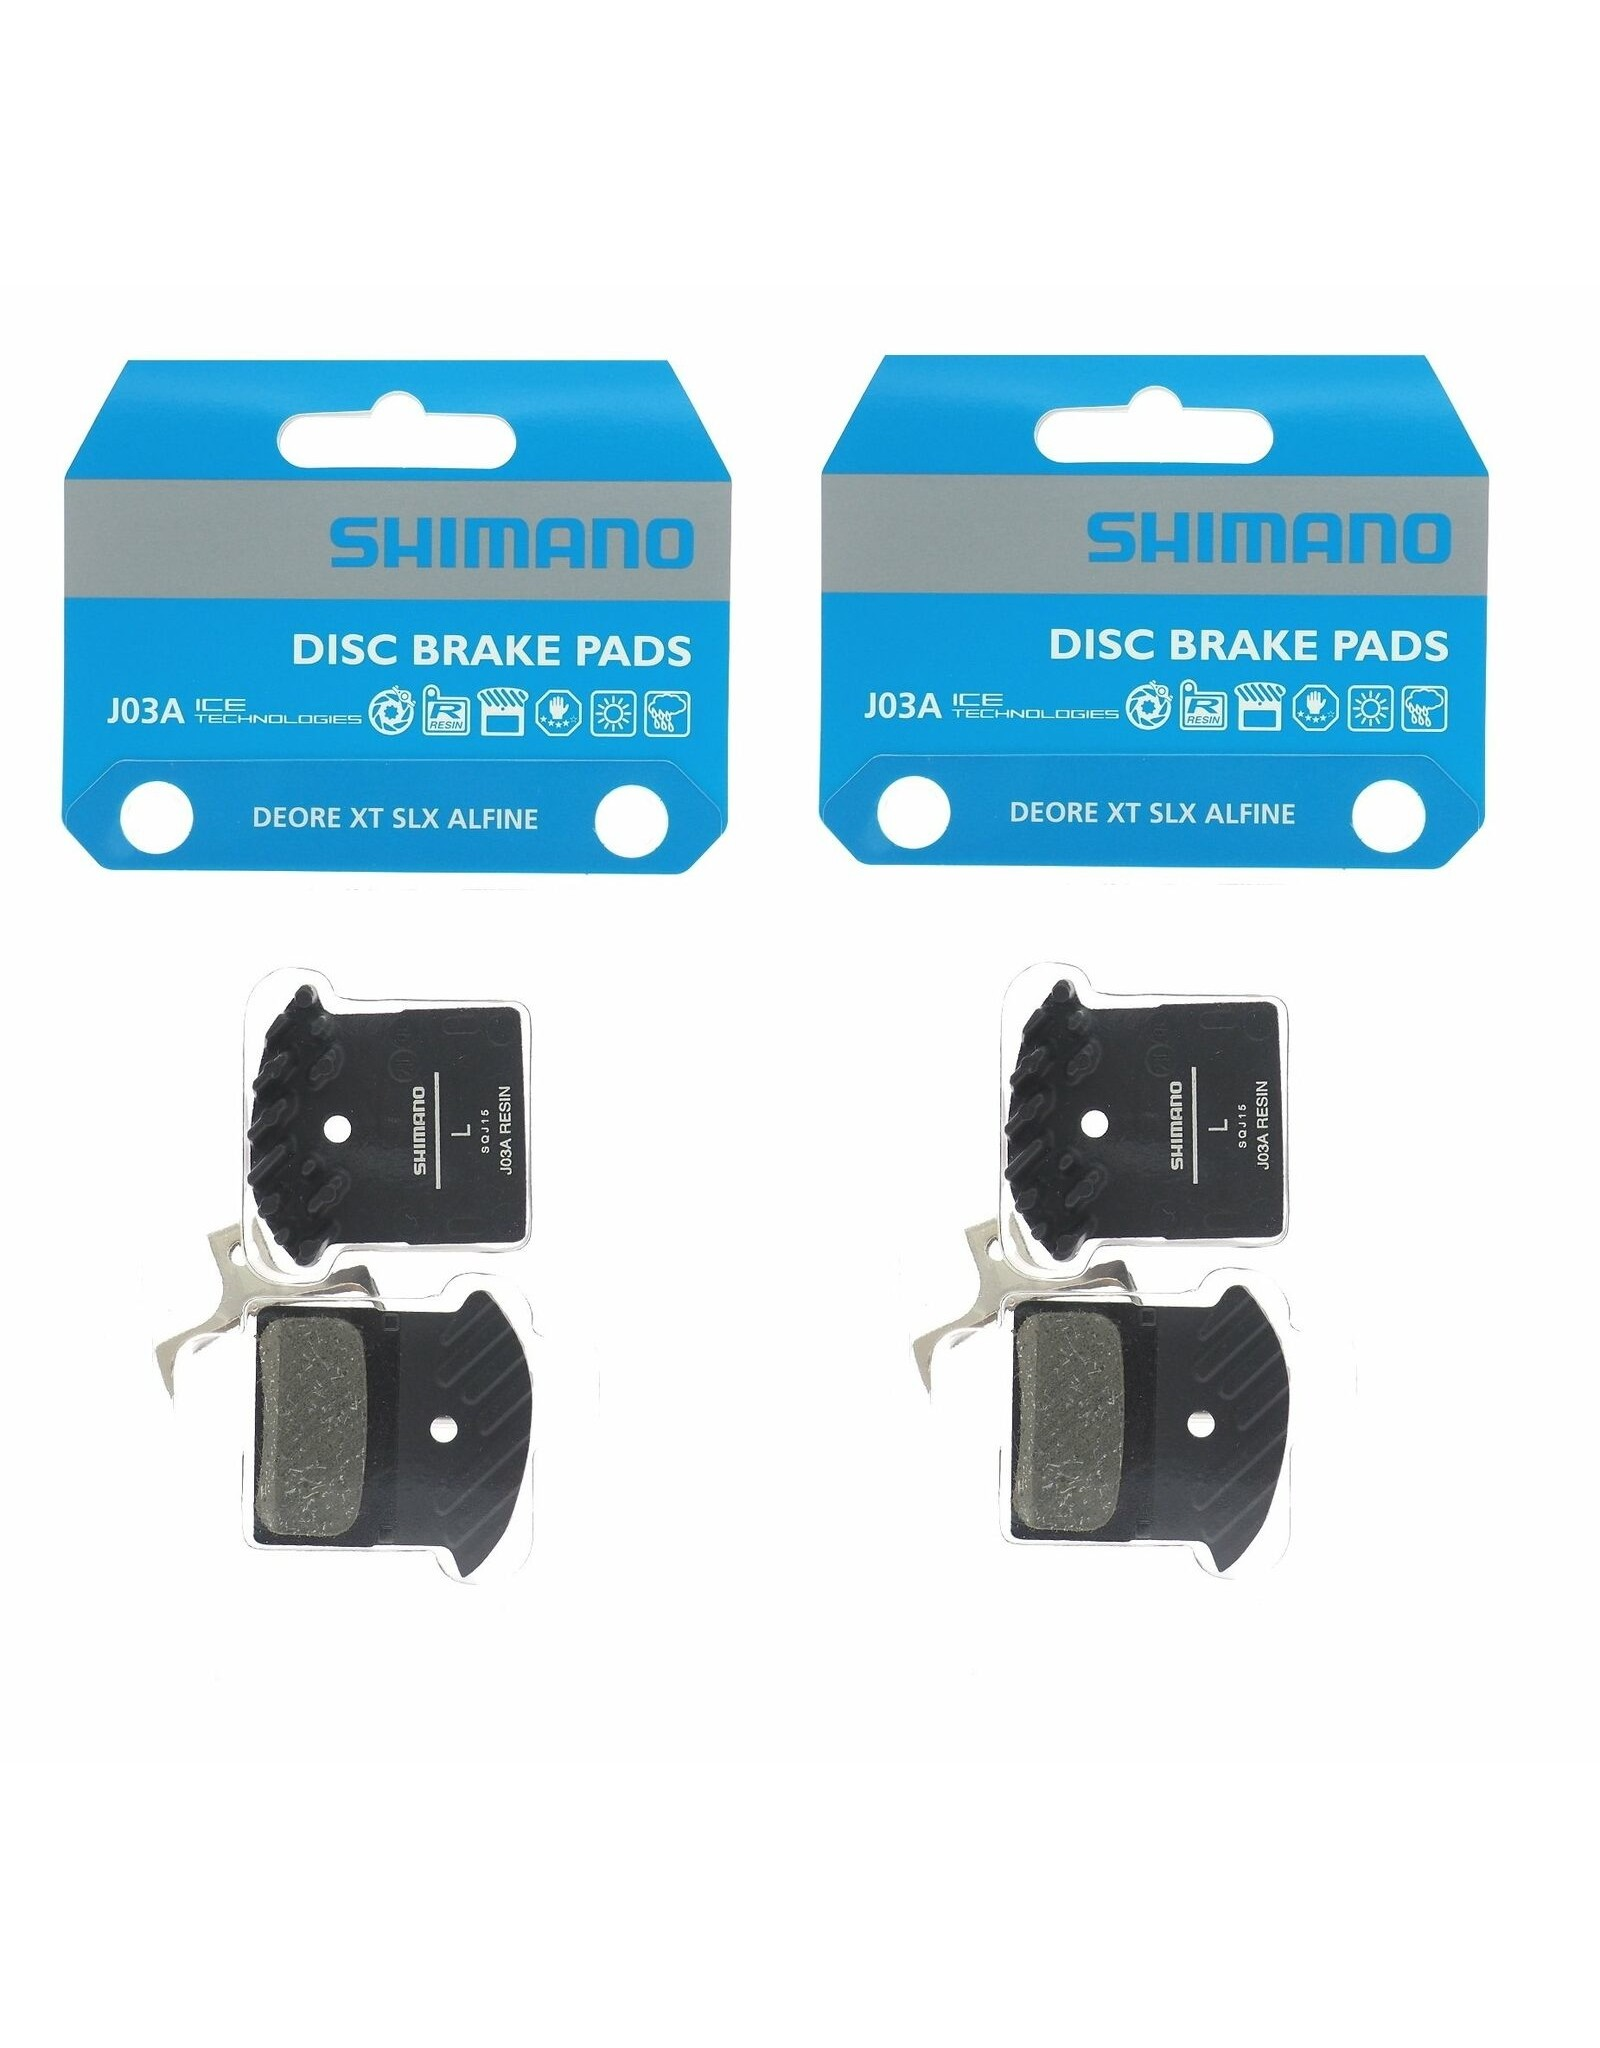 Shimano Shimano J03A Resin Disc Brake Pad - Resin, Finned, Fits XTR BR-M9000, XT BR-M8100/BR-M8000, SLX BR-M7100, Deore BR-M6000, and BR-RS785